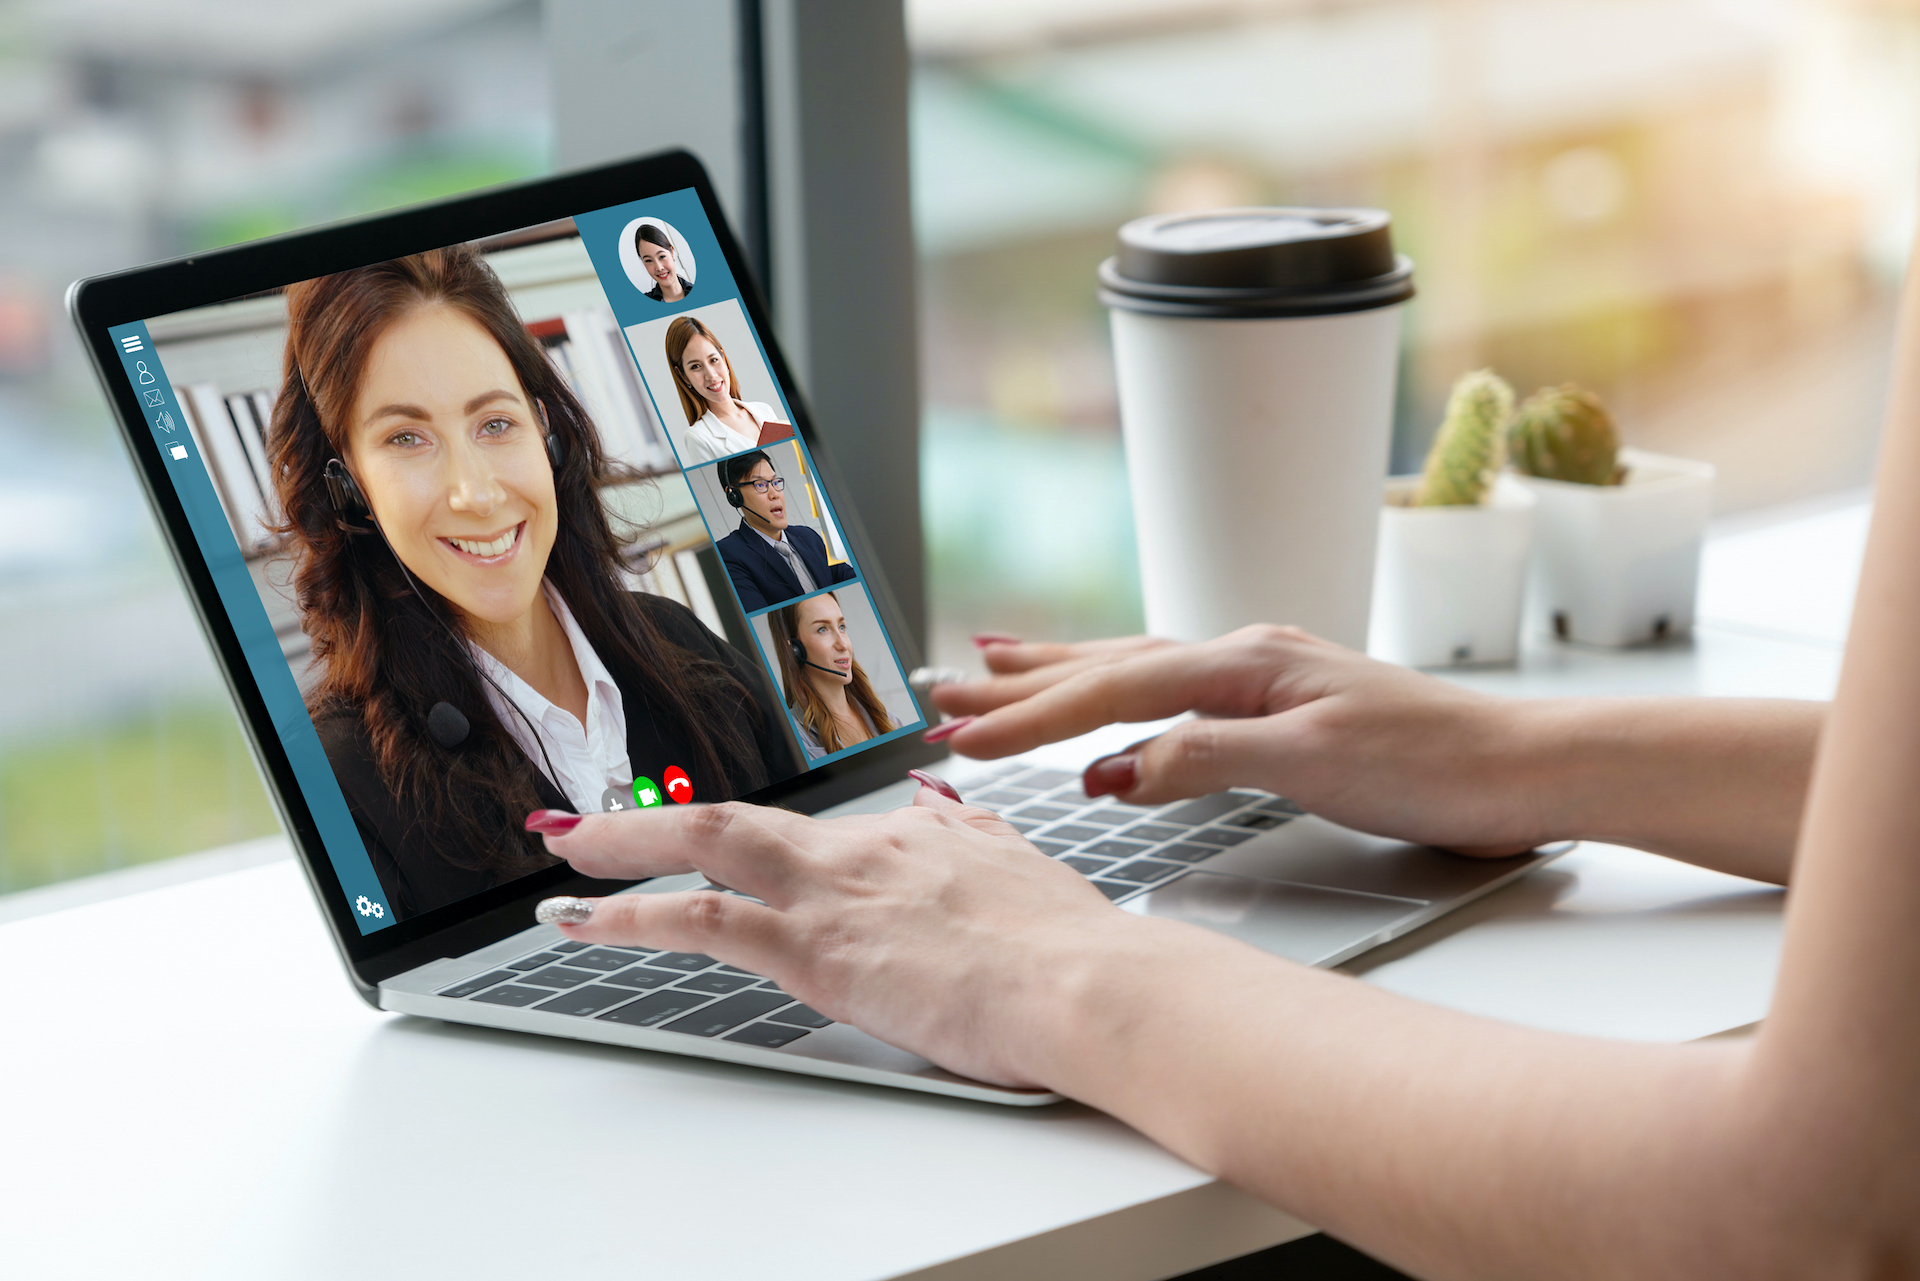 Woman jobseeker doing a virtual job interview with hiring managers on laptop